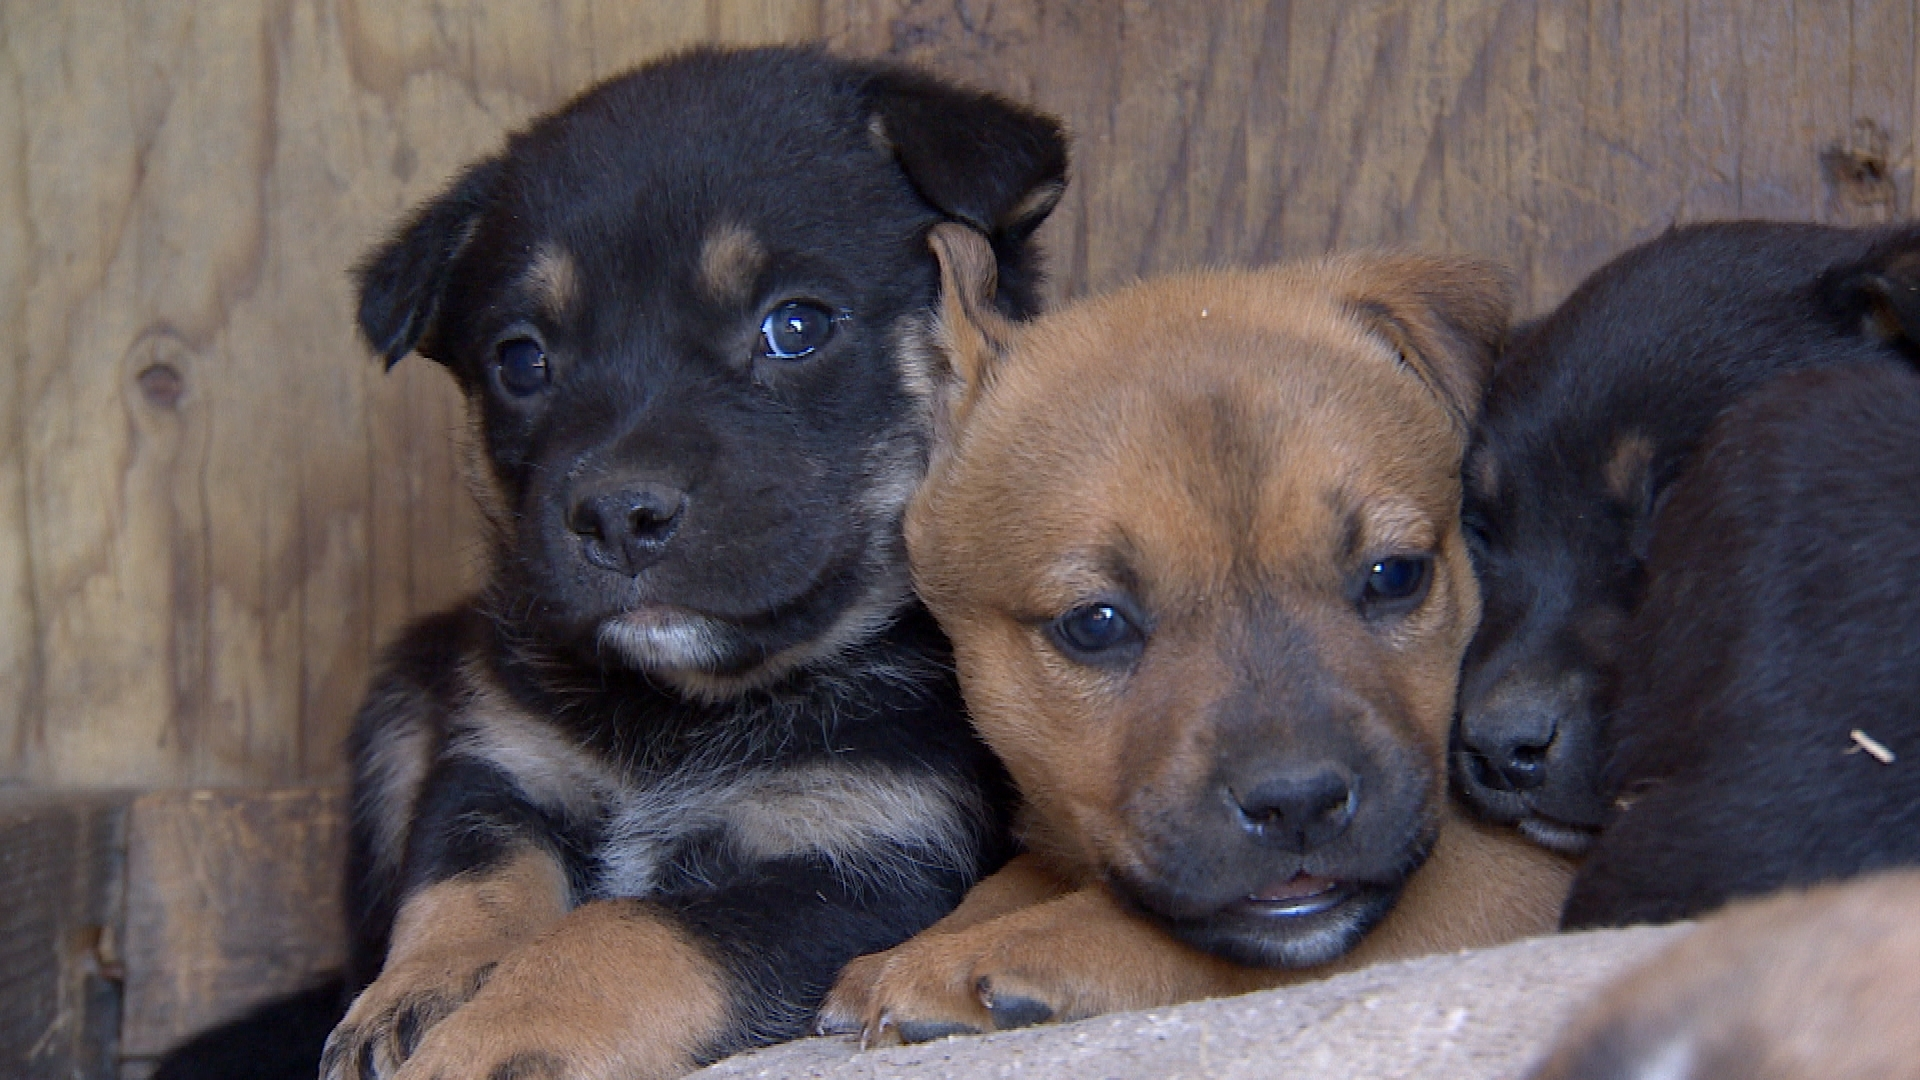 These newborn puppies are set to be spayed and neutered. (Sam Martin/CBC)